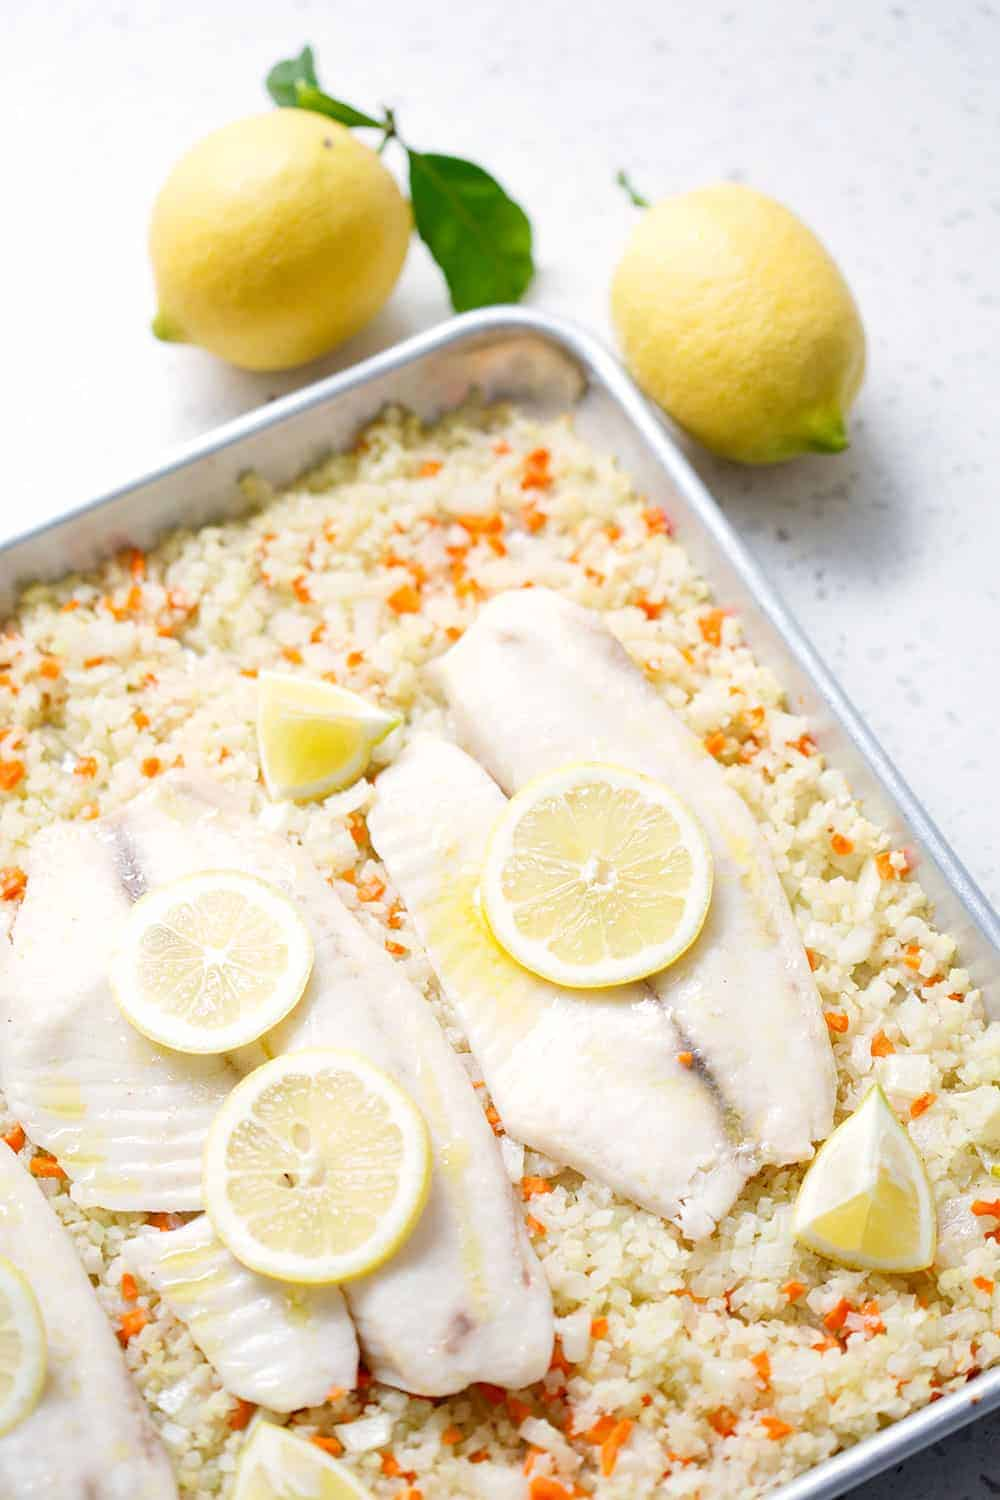 Baked Fish With Cauliflower Rice Pilaf Sheet Pan Meal Bon Aippetit